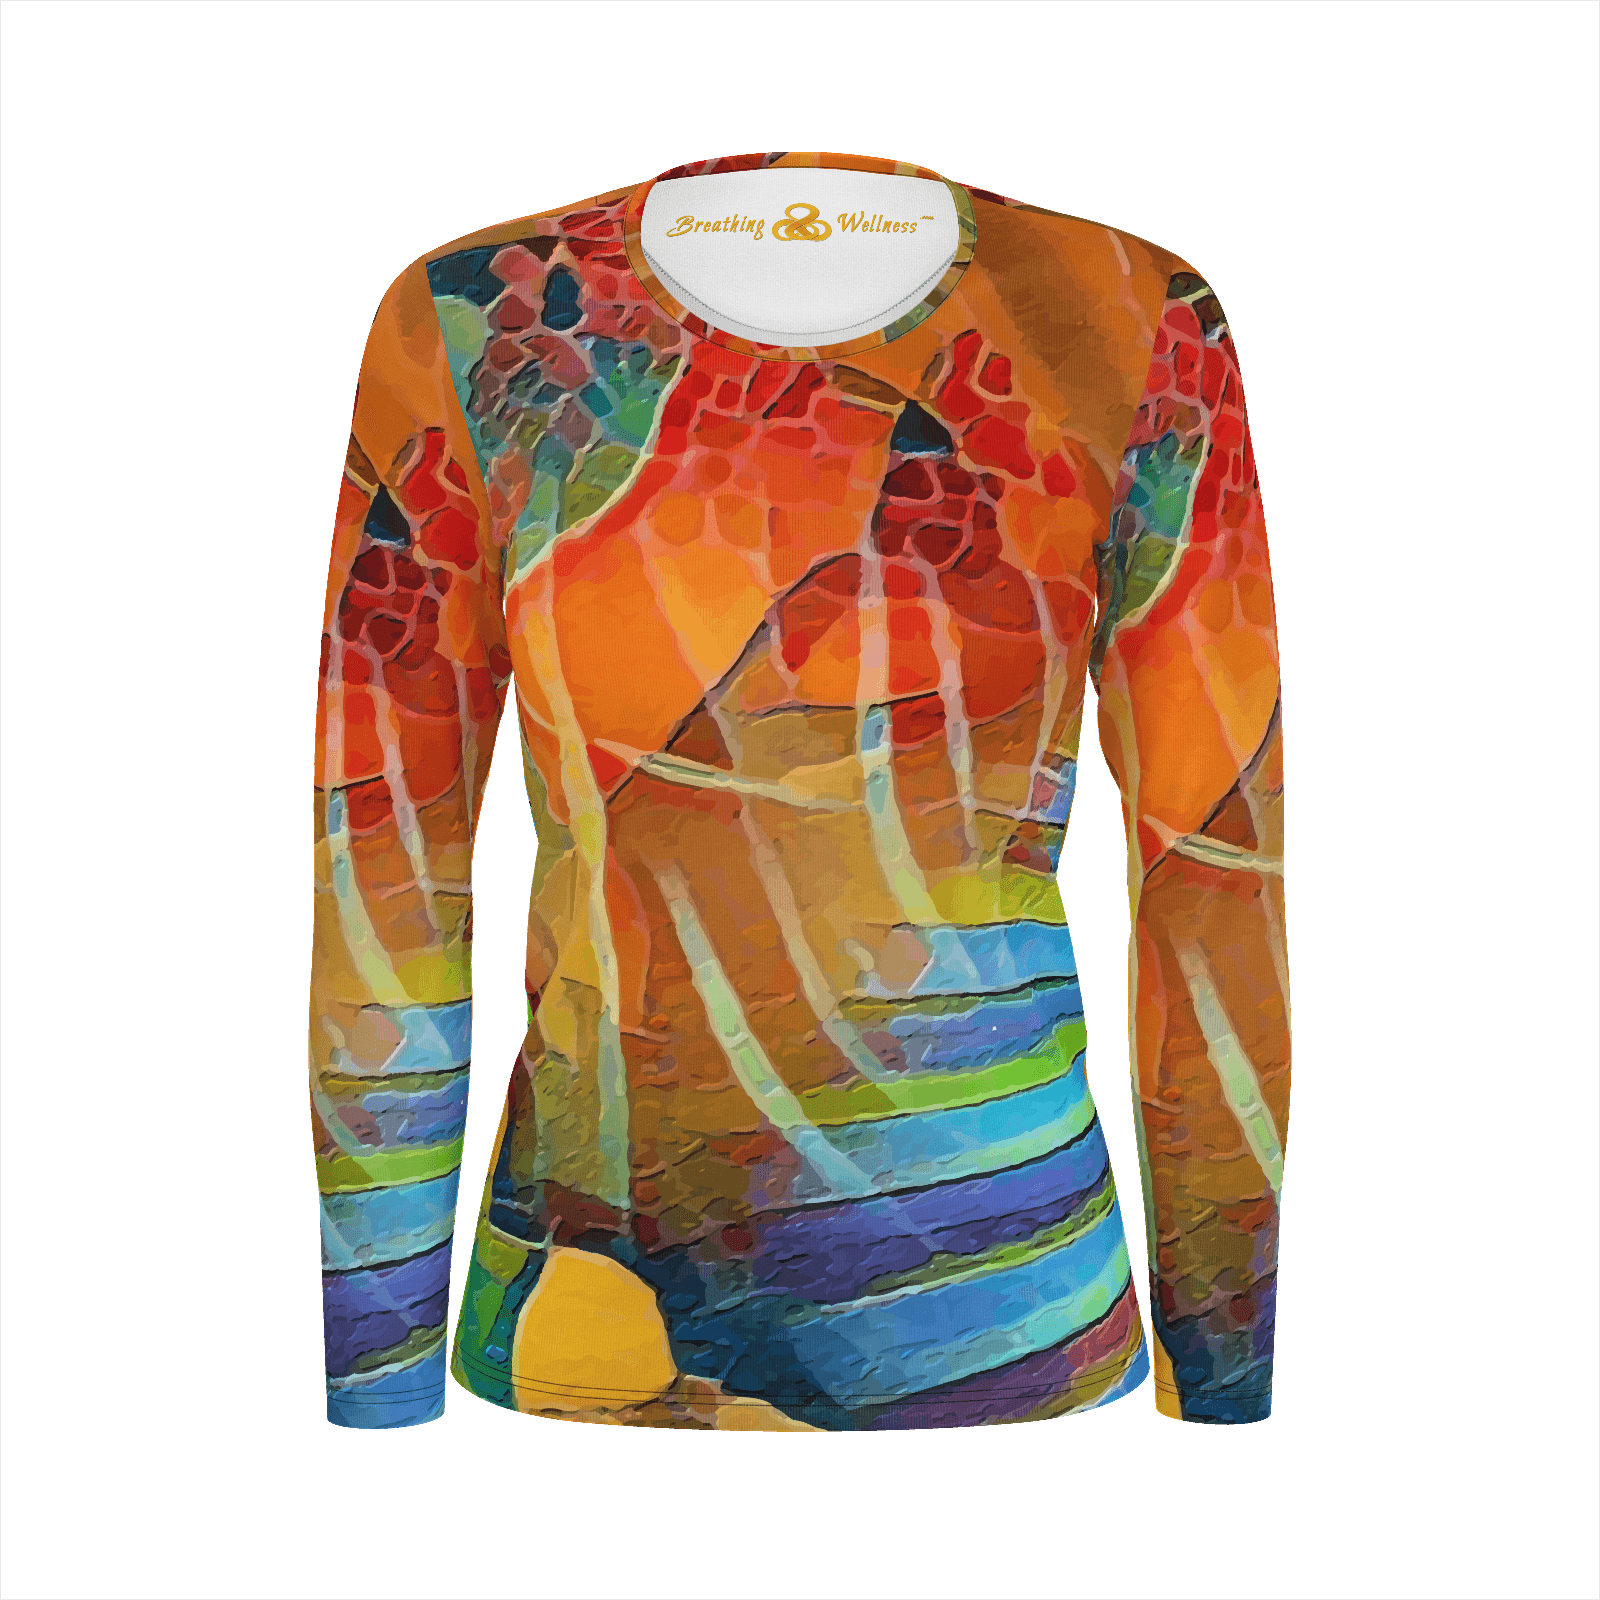 Sunday Morning - Deluxe Long Sleeve T-Shirt 100% Pima Cotton_artist-Carlo-Bressan_Breathing-Wellness